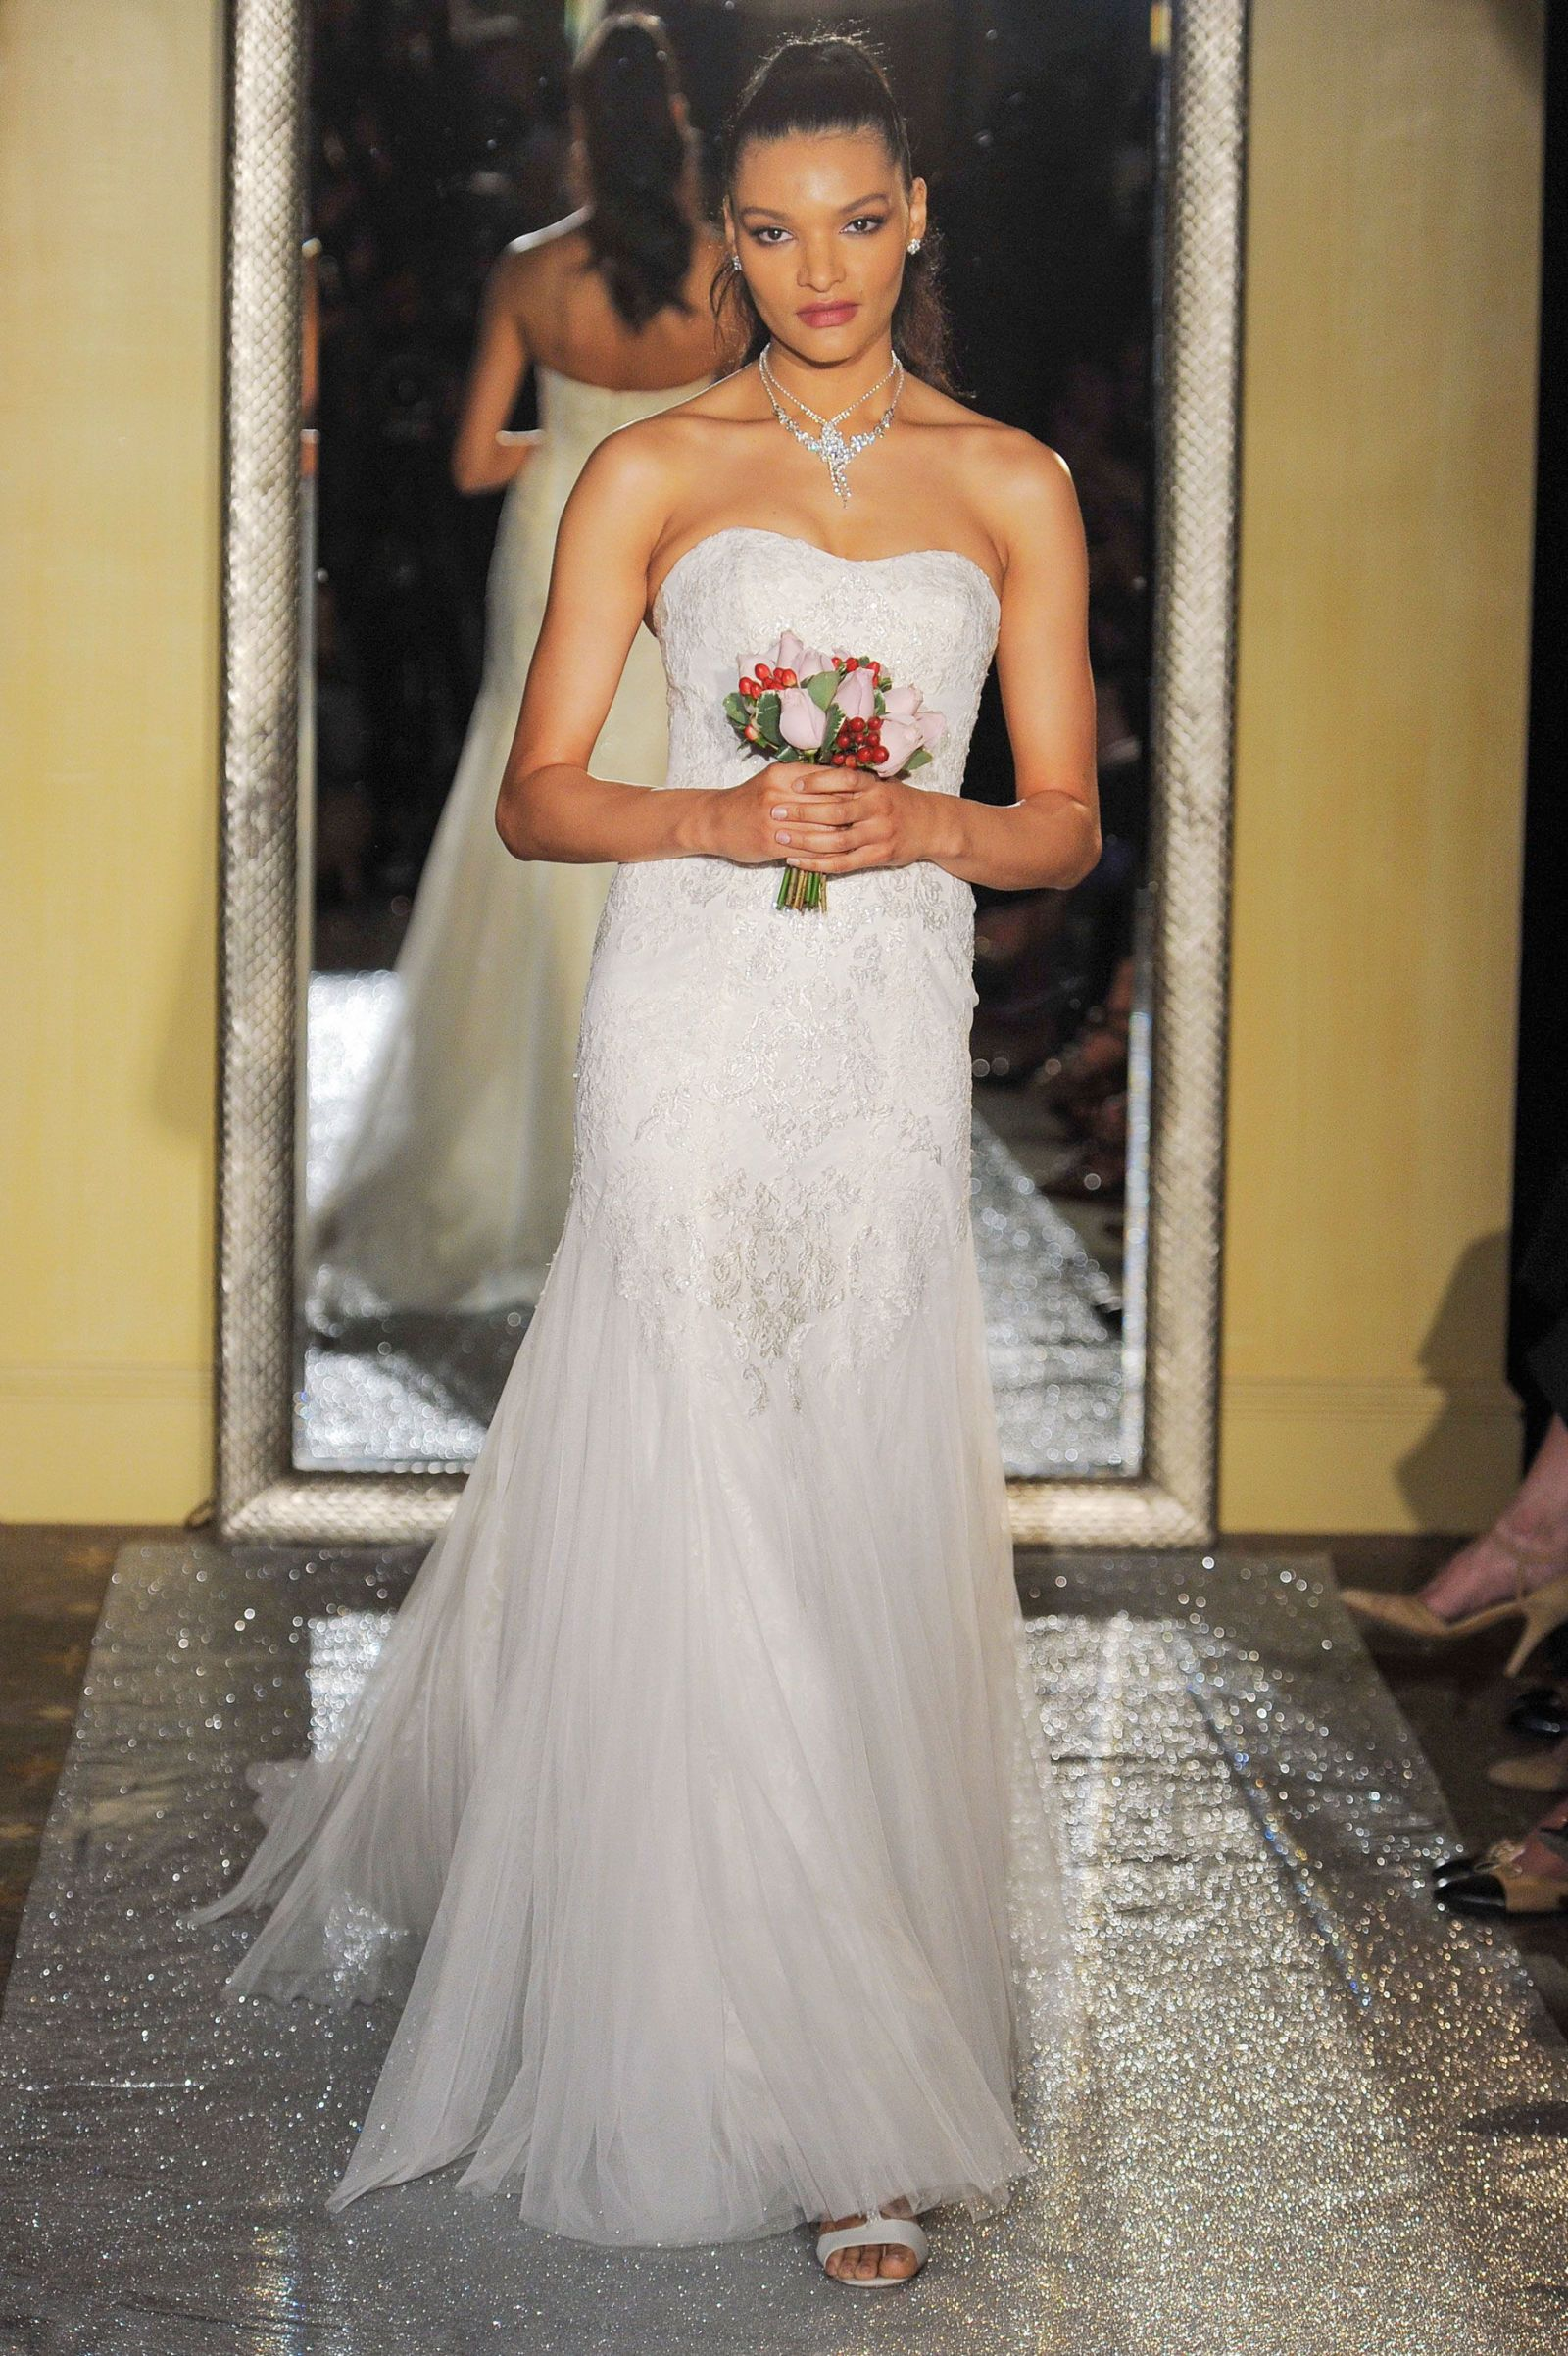 Dresses for 50th wedding anniversary party   Beach Wedding Dresses You Can Buy Off the Rack  Pinterest